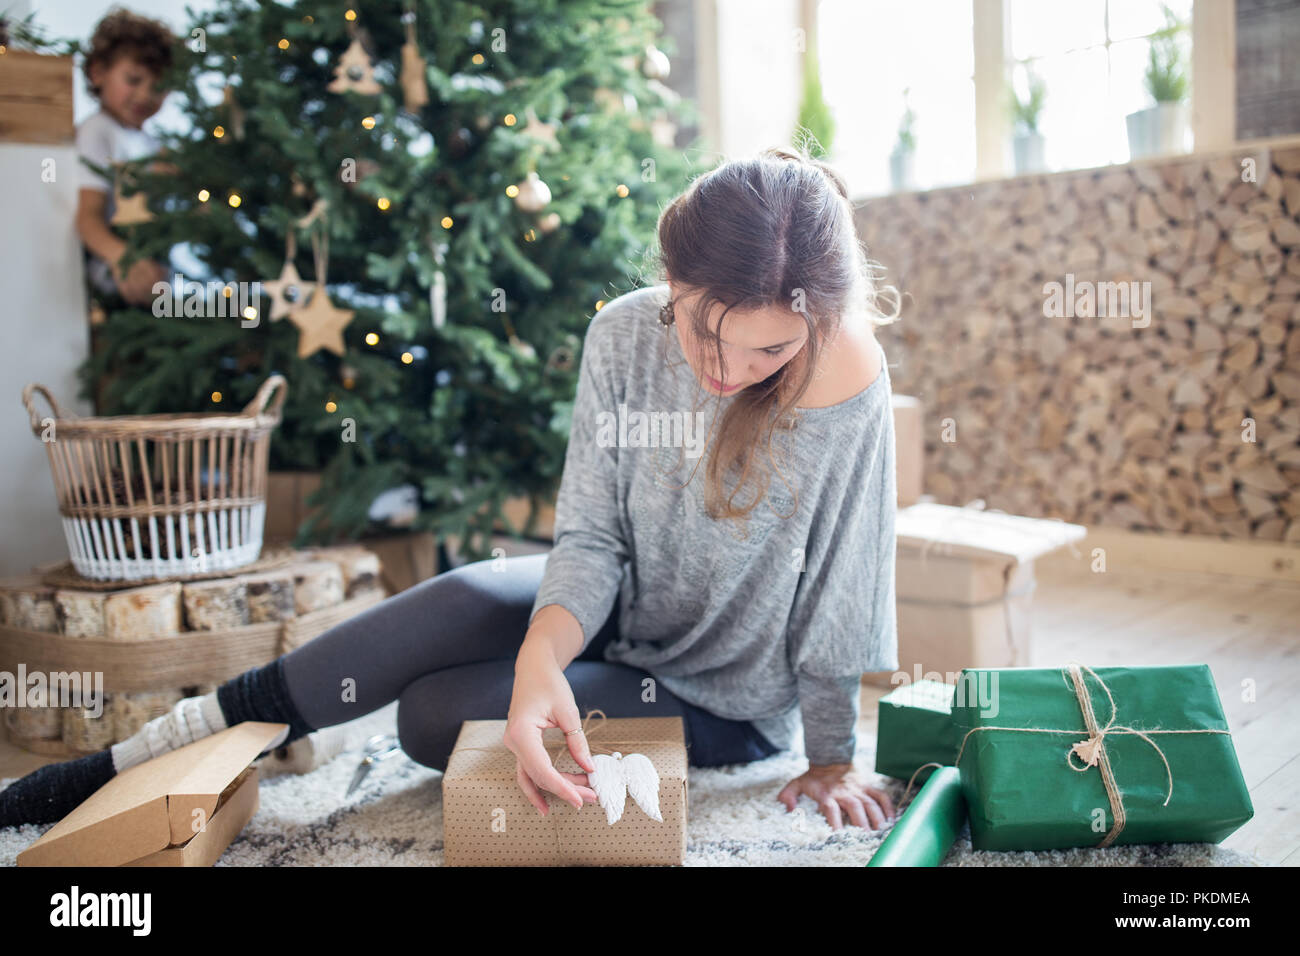 Mother Christmas Gifts.Mother Wrapping Christmas Gifts For Family Preparing